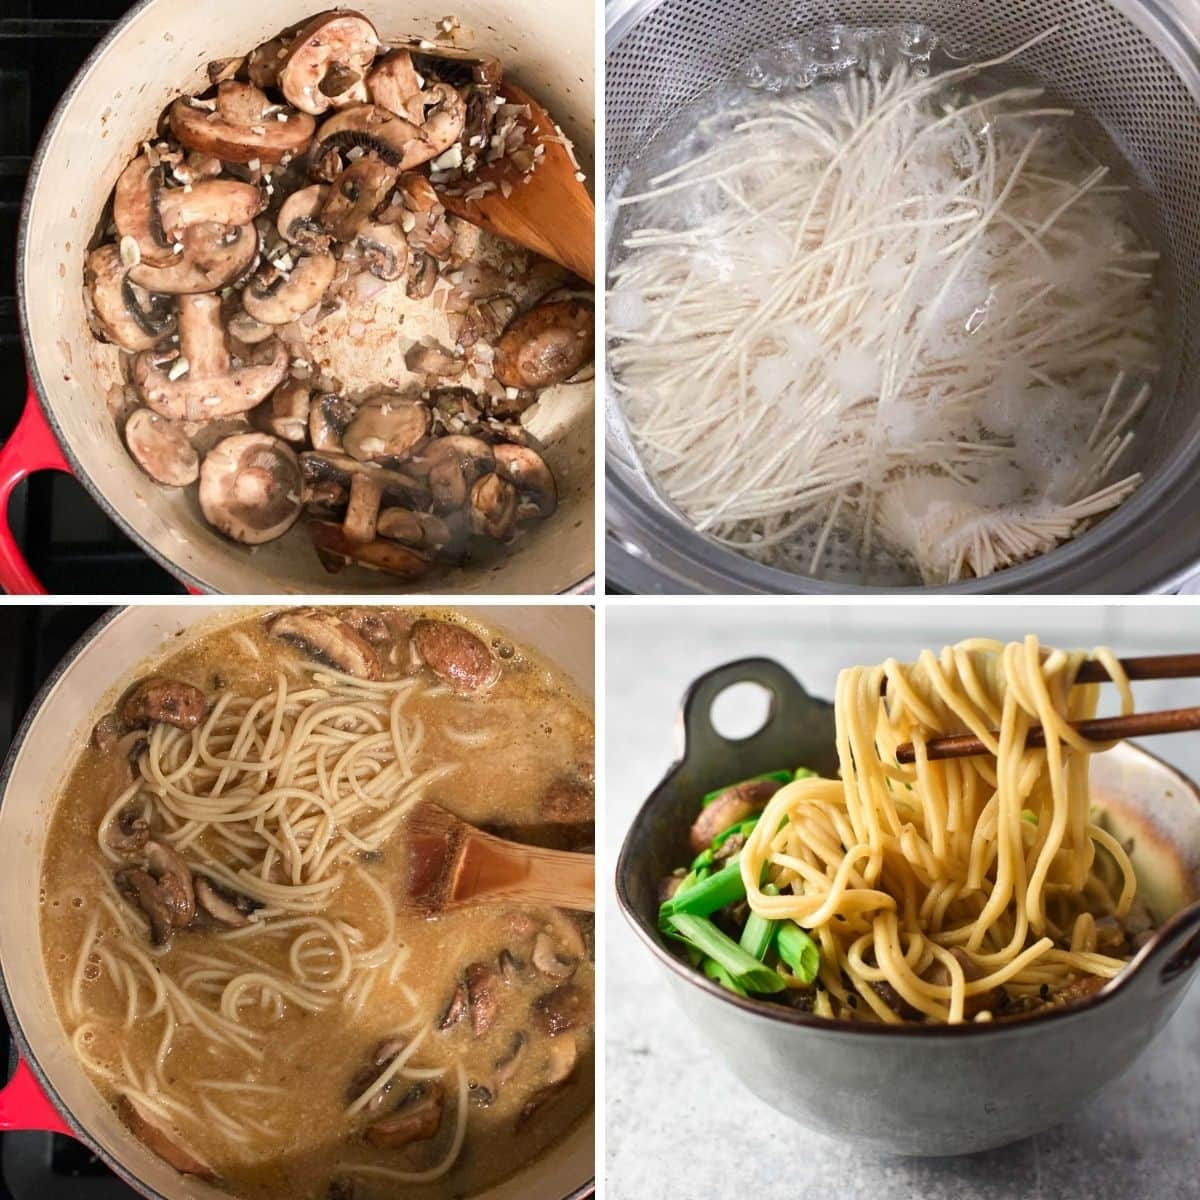 A 4 step process photo of cooking mushrooms, boiling ramen noodles, mixing in broth, and adding noodles